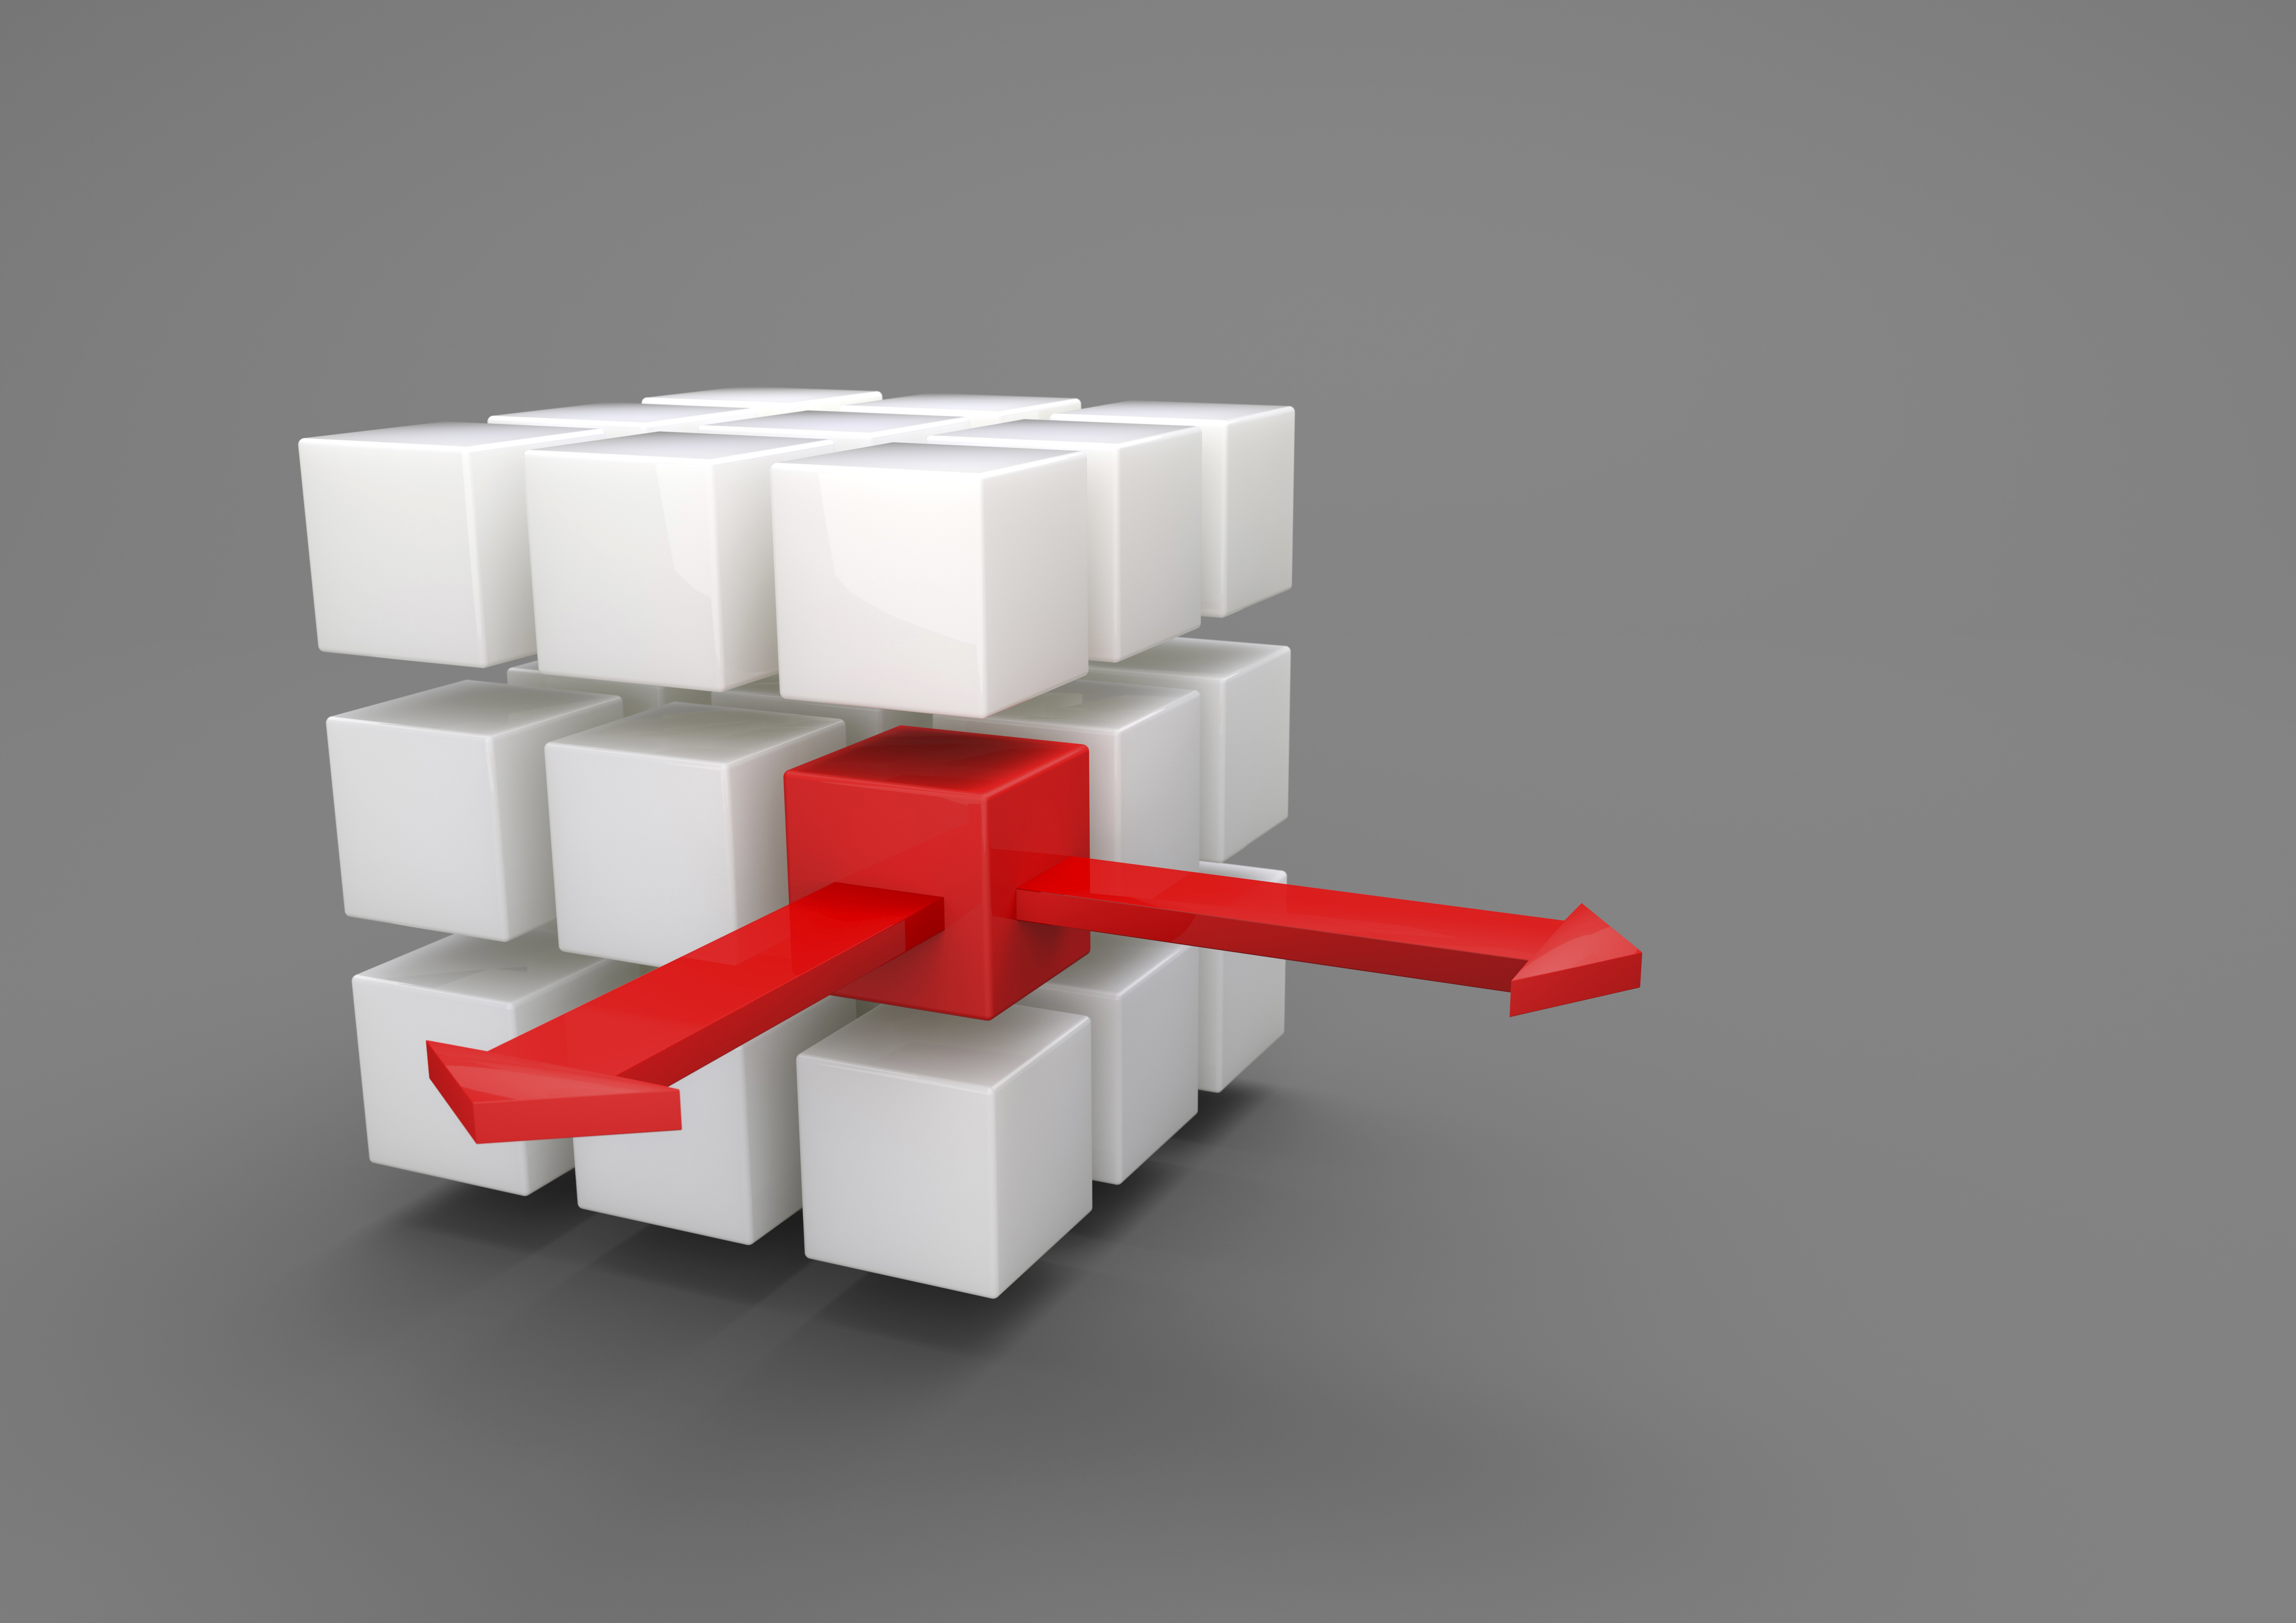 Image of a white cube with smaller red cubes being outsourced.